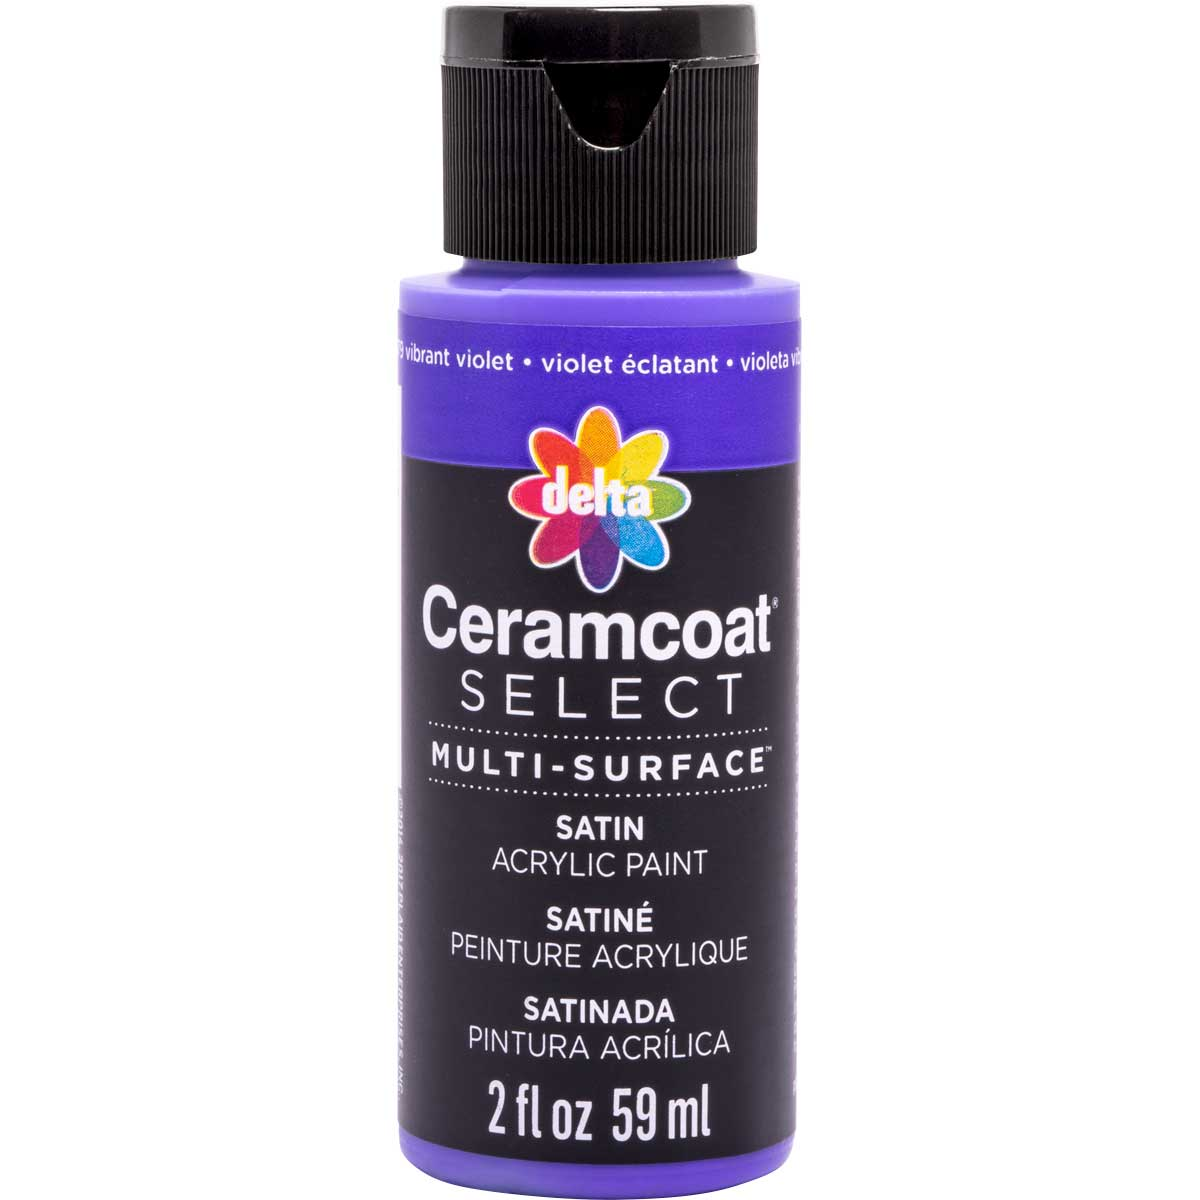 Delta Ceramcoat ® Select Multi-Surface Acrylic Paint - Satin - Vibrant Violet, 2 oz. - 04079